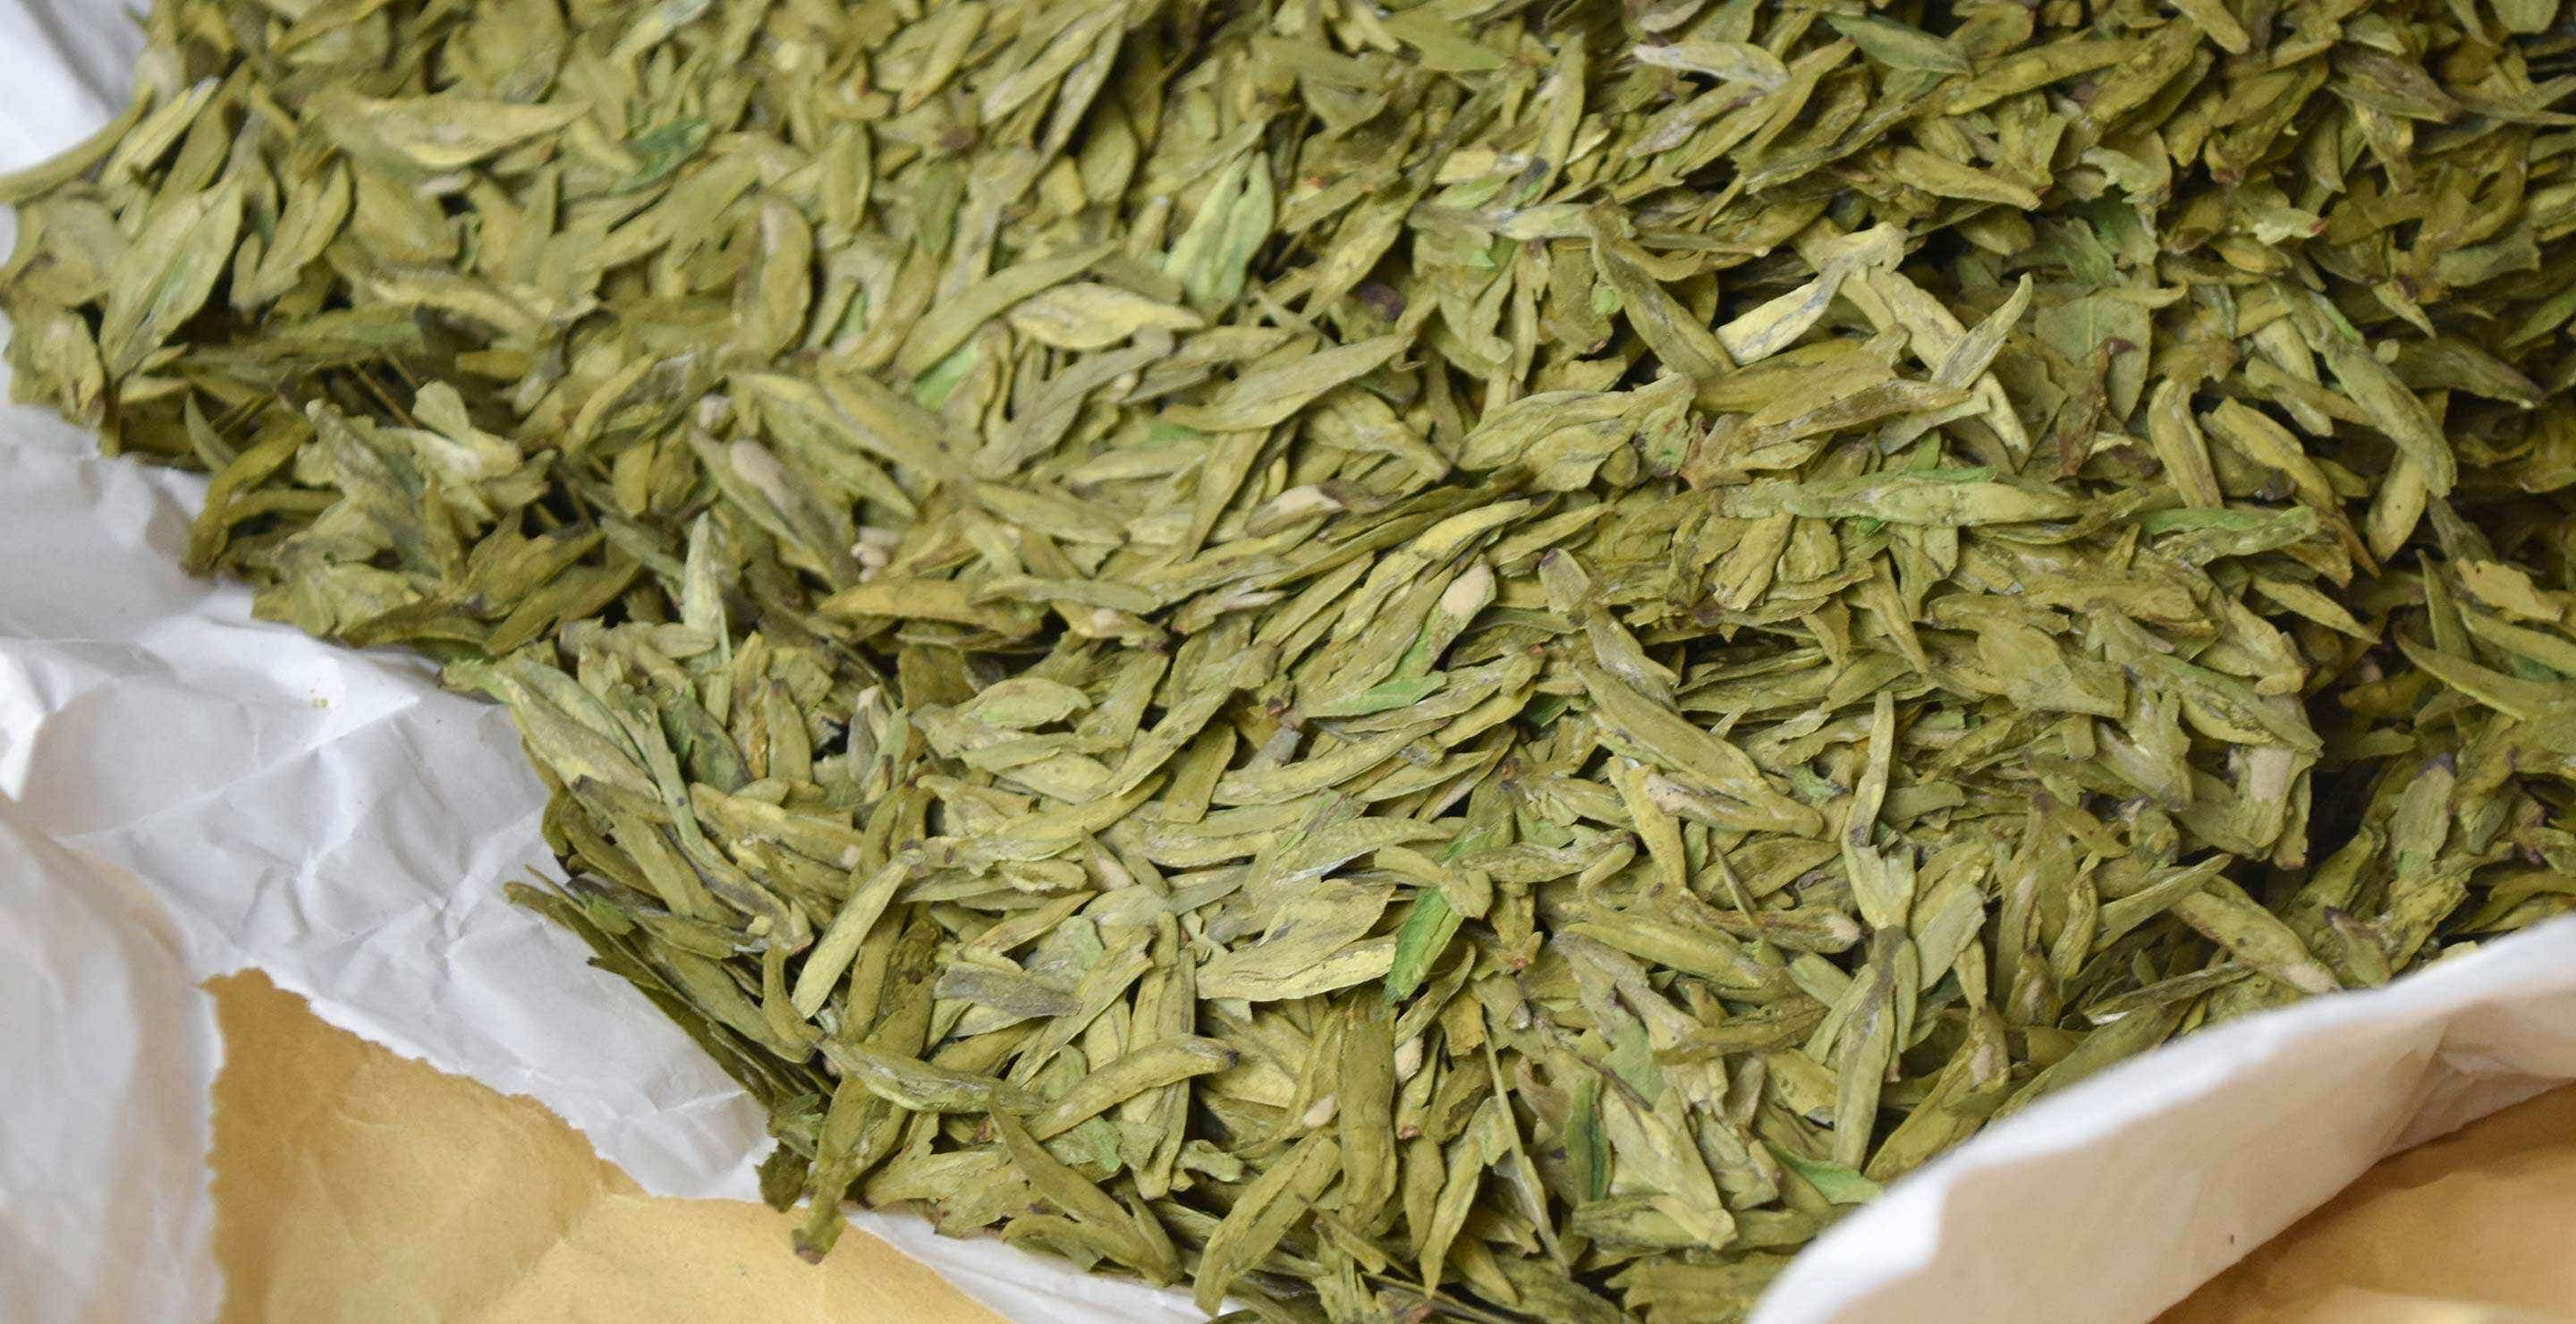 dragonwell-day-2-leaves-longjing-43-C-0680-largex2